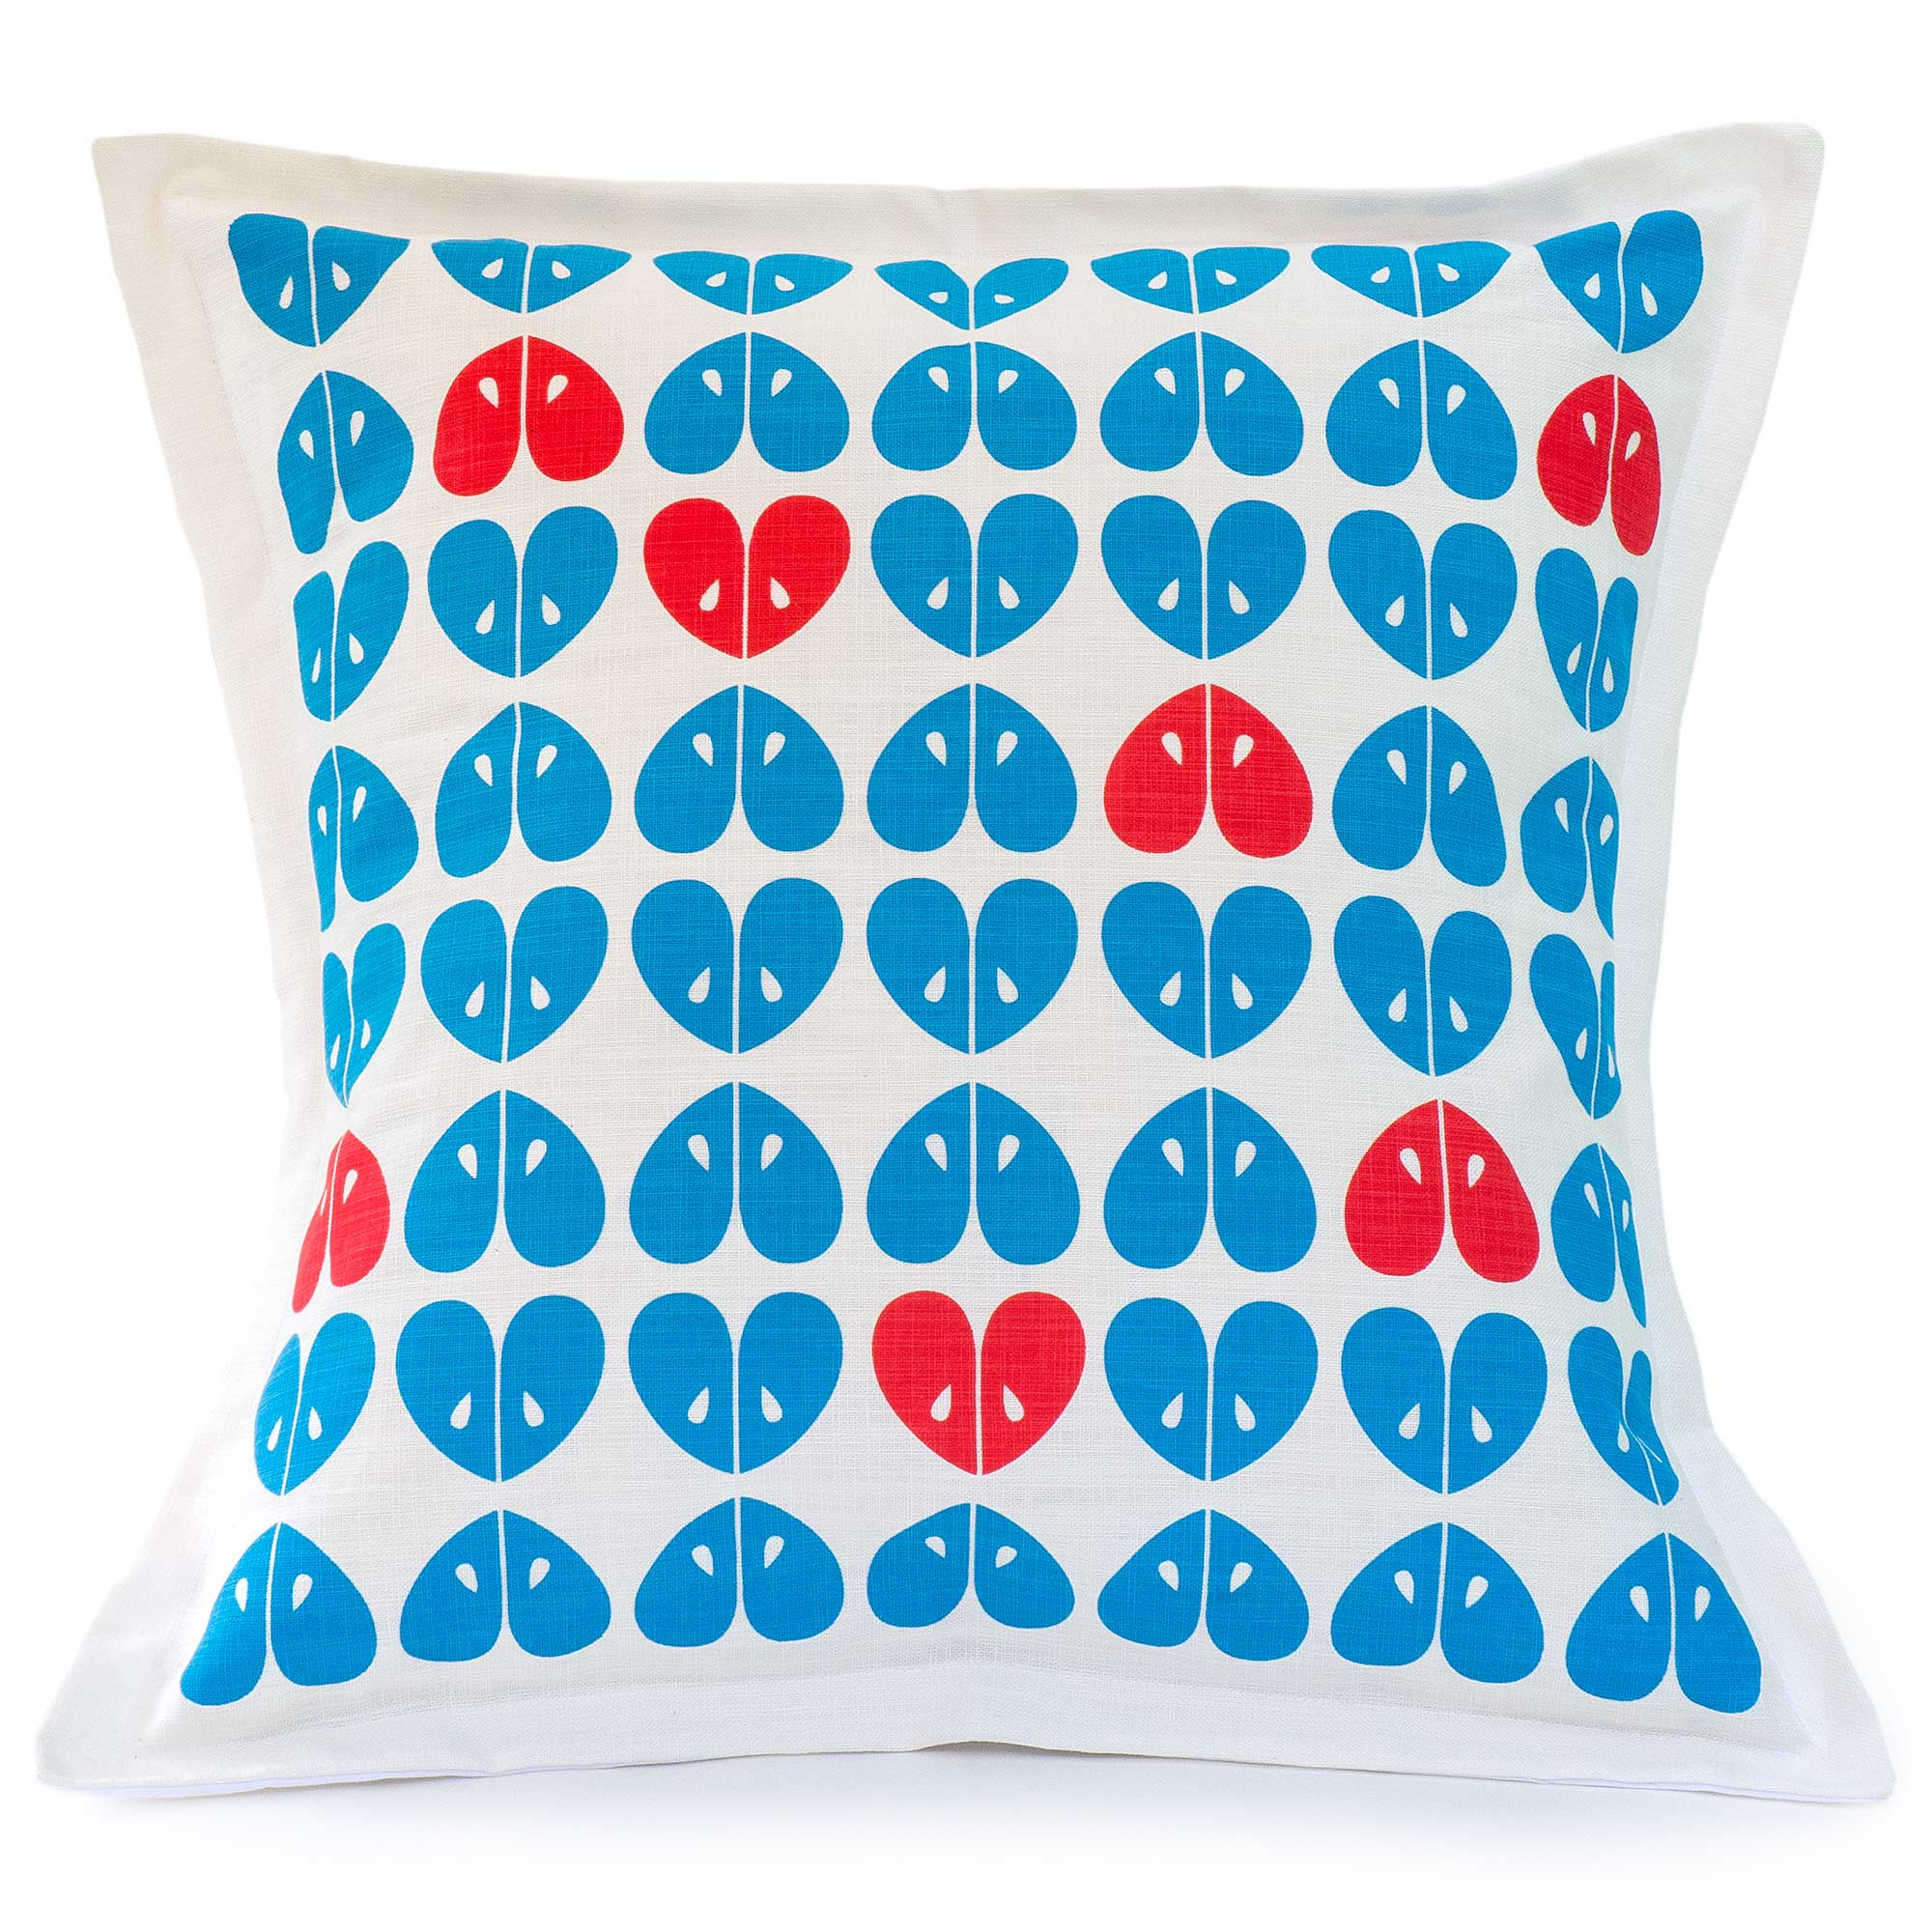 Apples cushion large